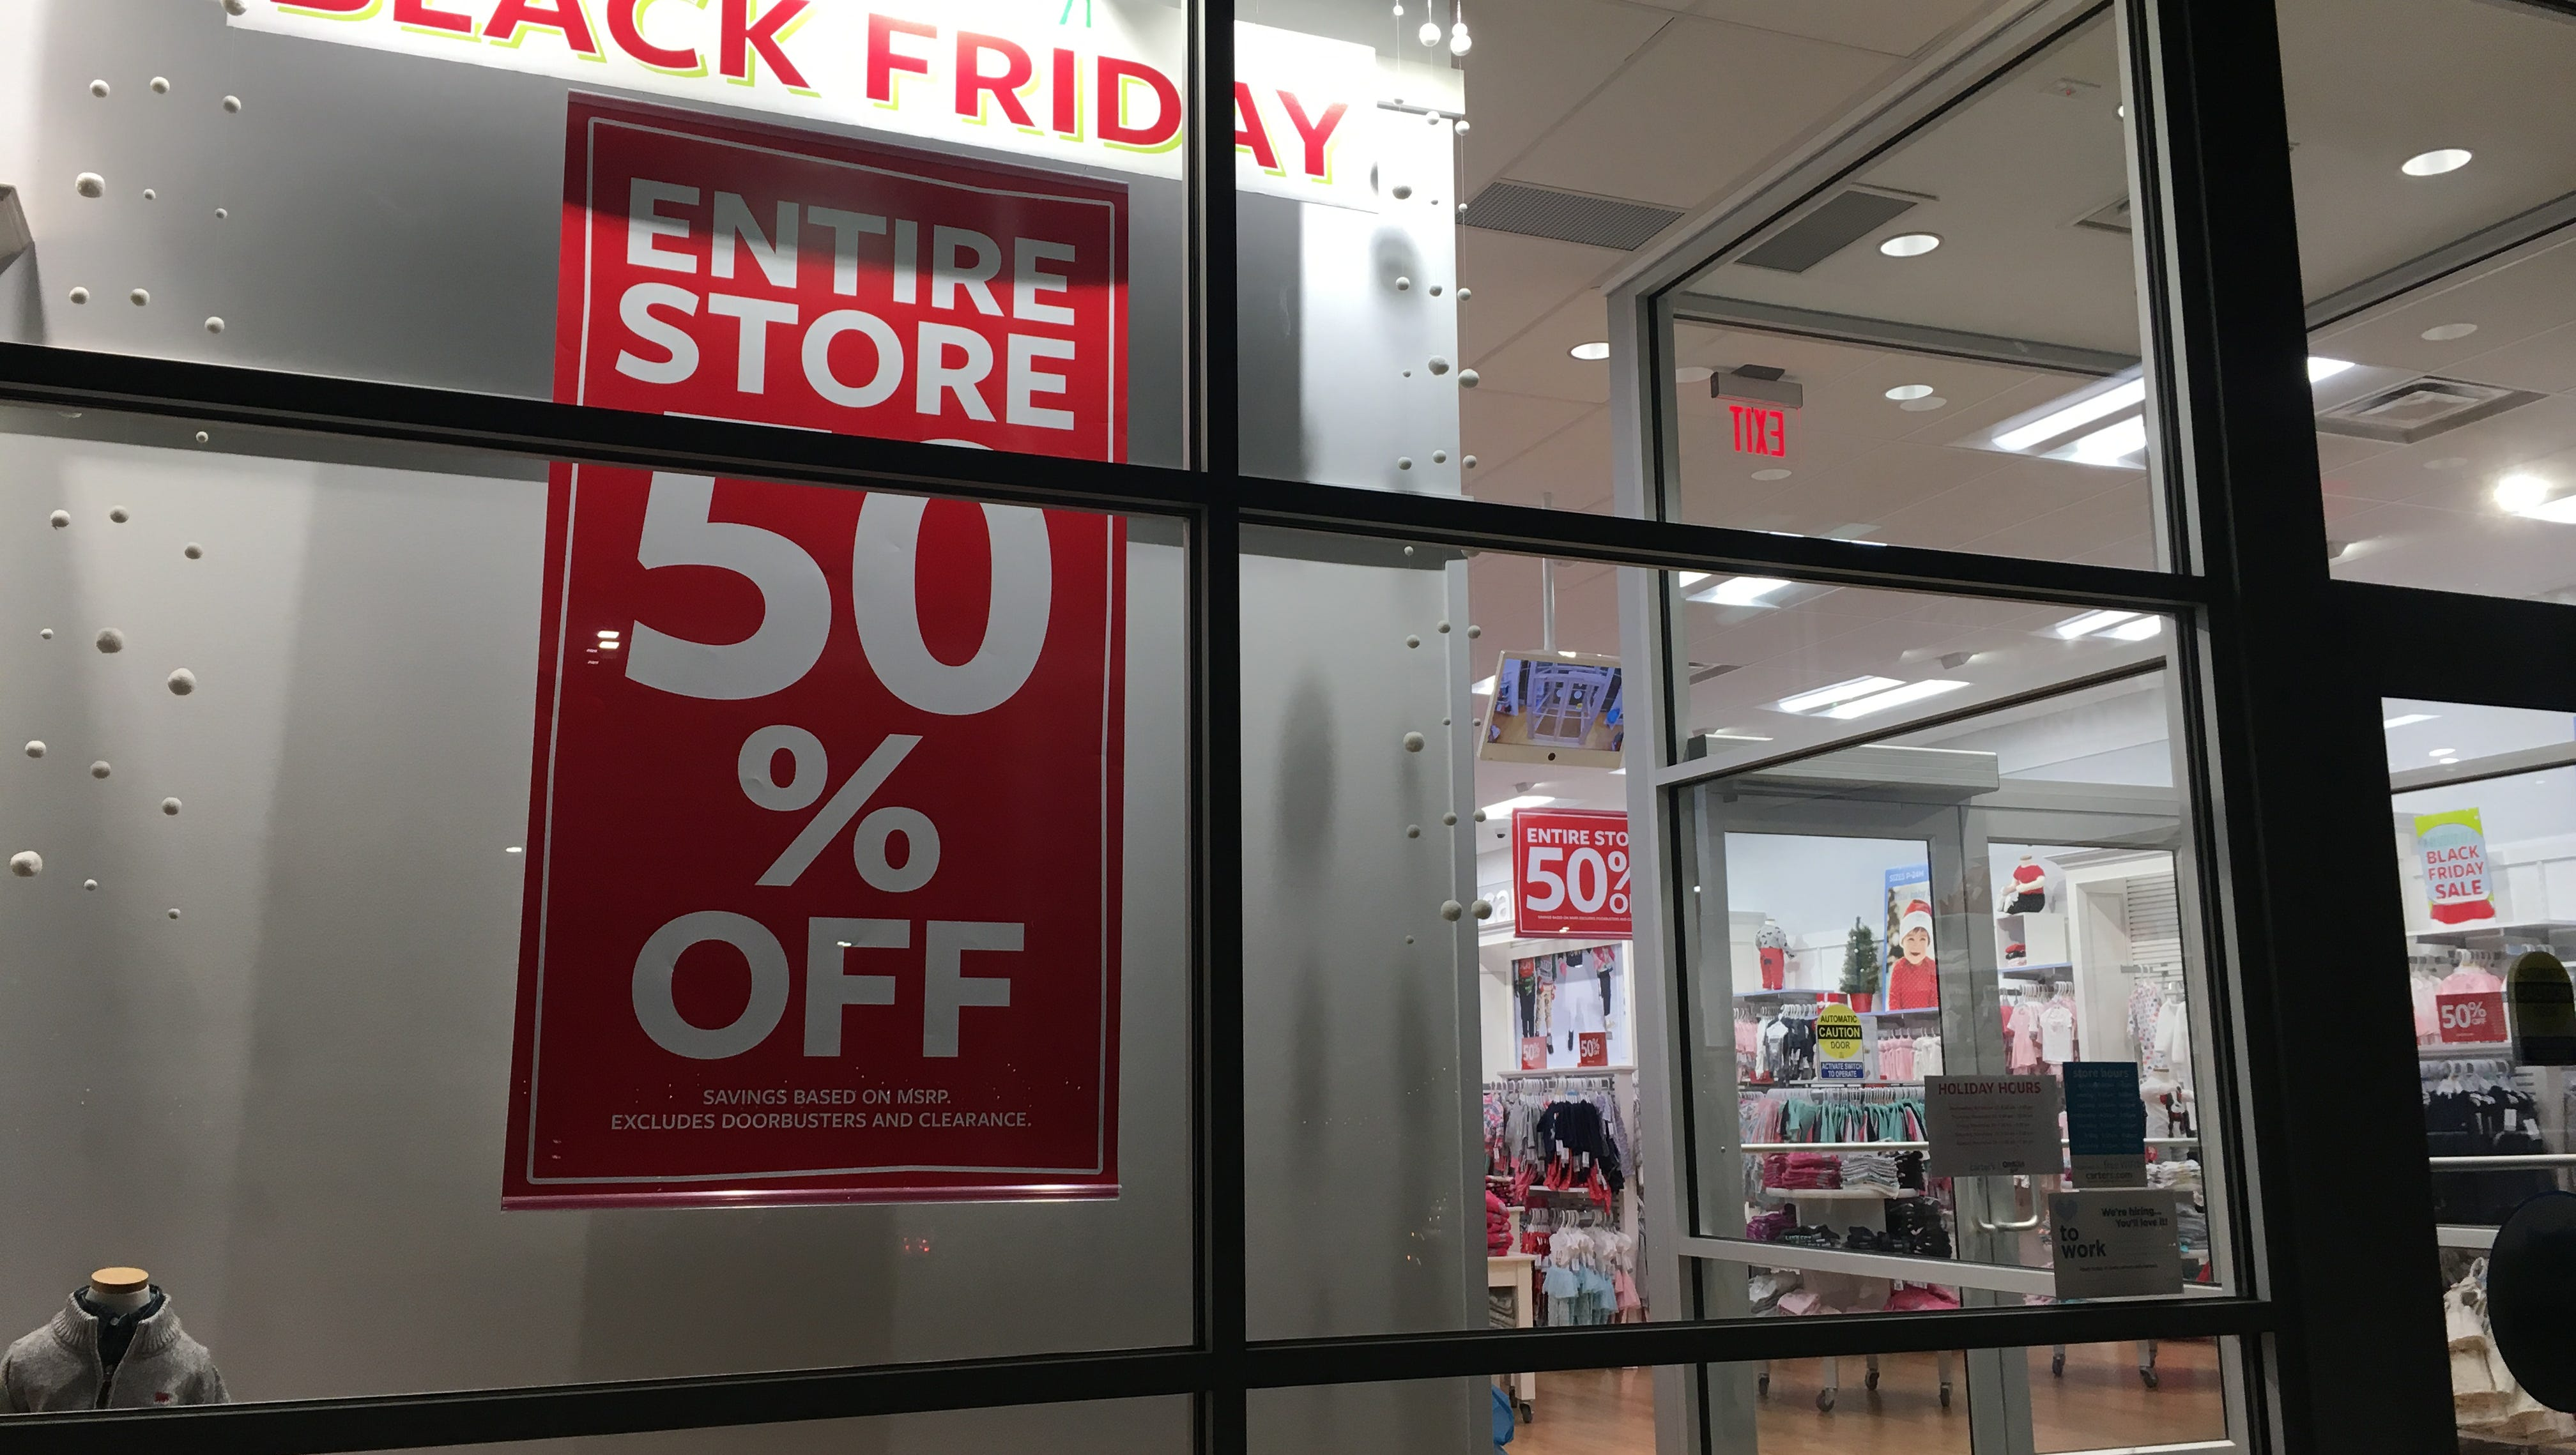 Black Friday Bonanza New Retail In Sioux Falls Adds To Black Friday Options